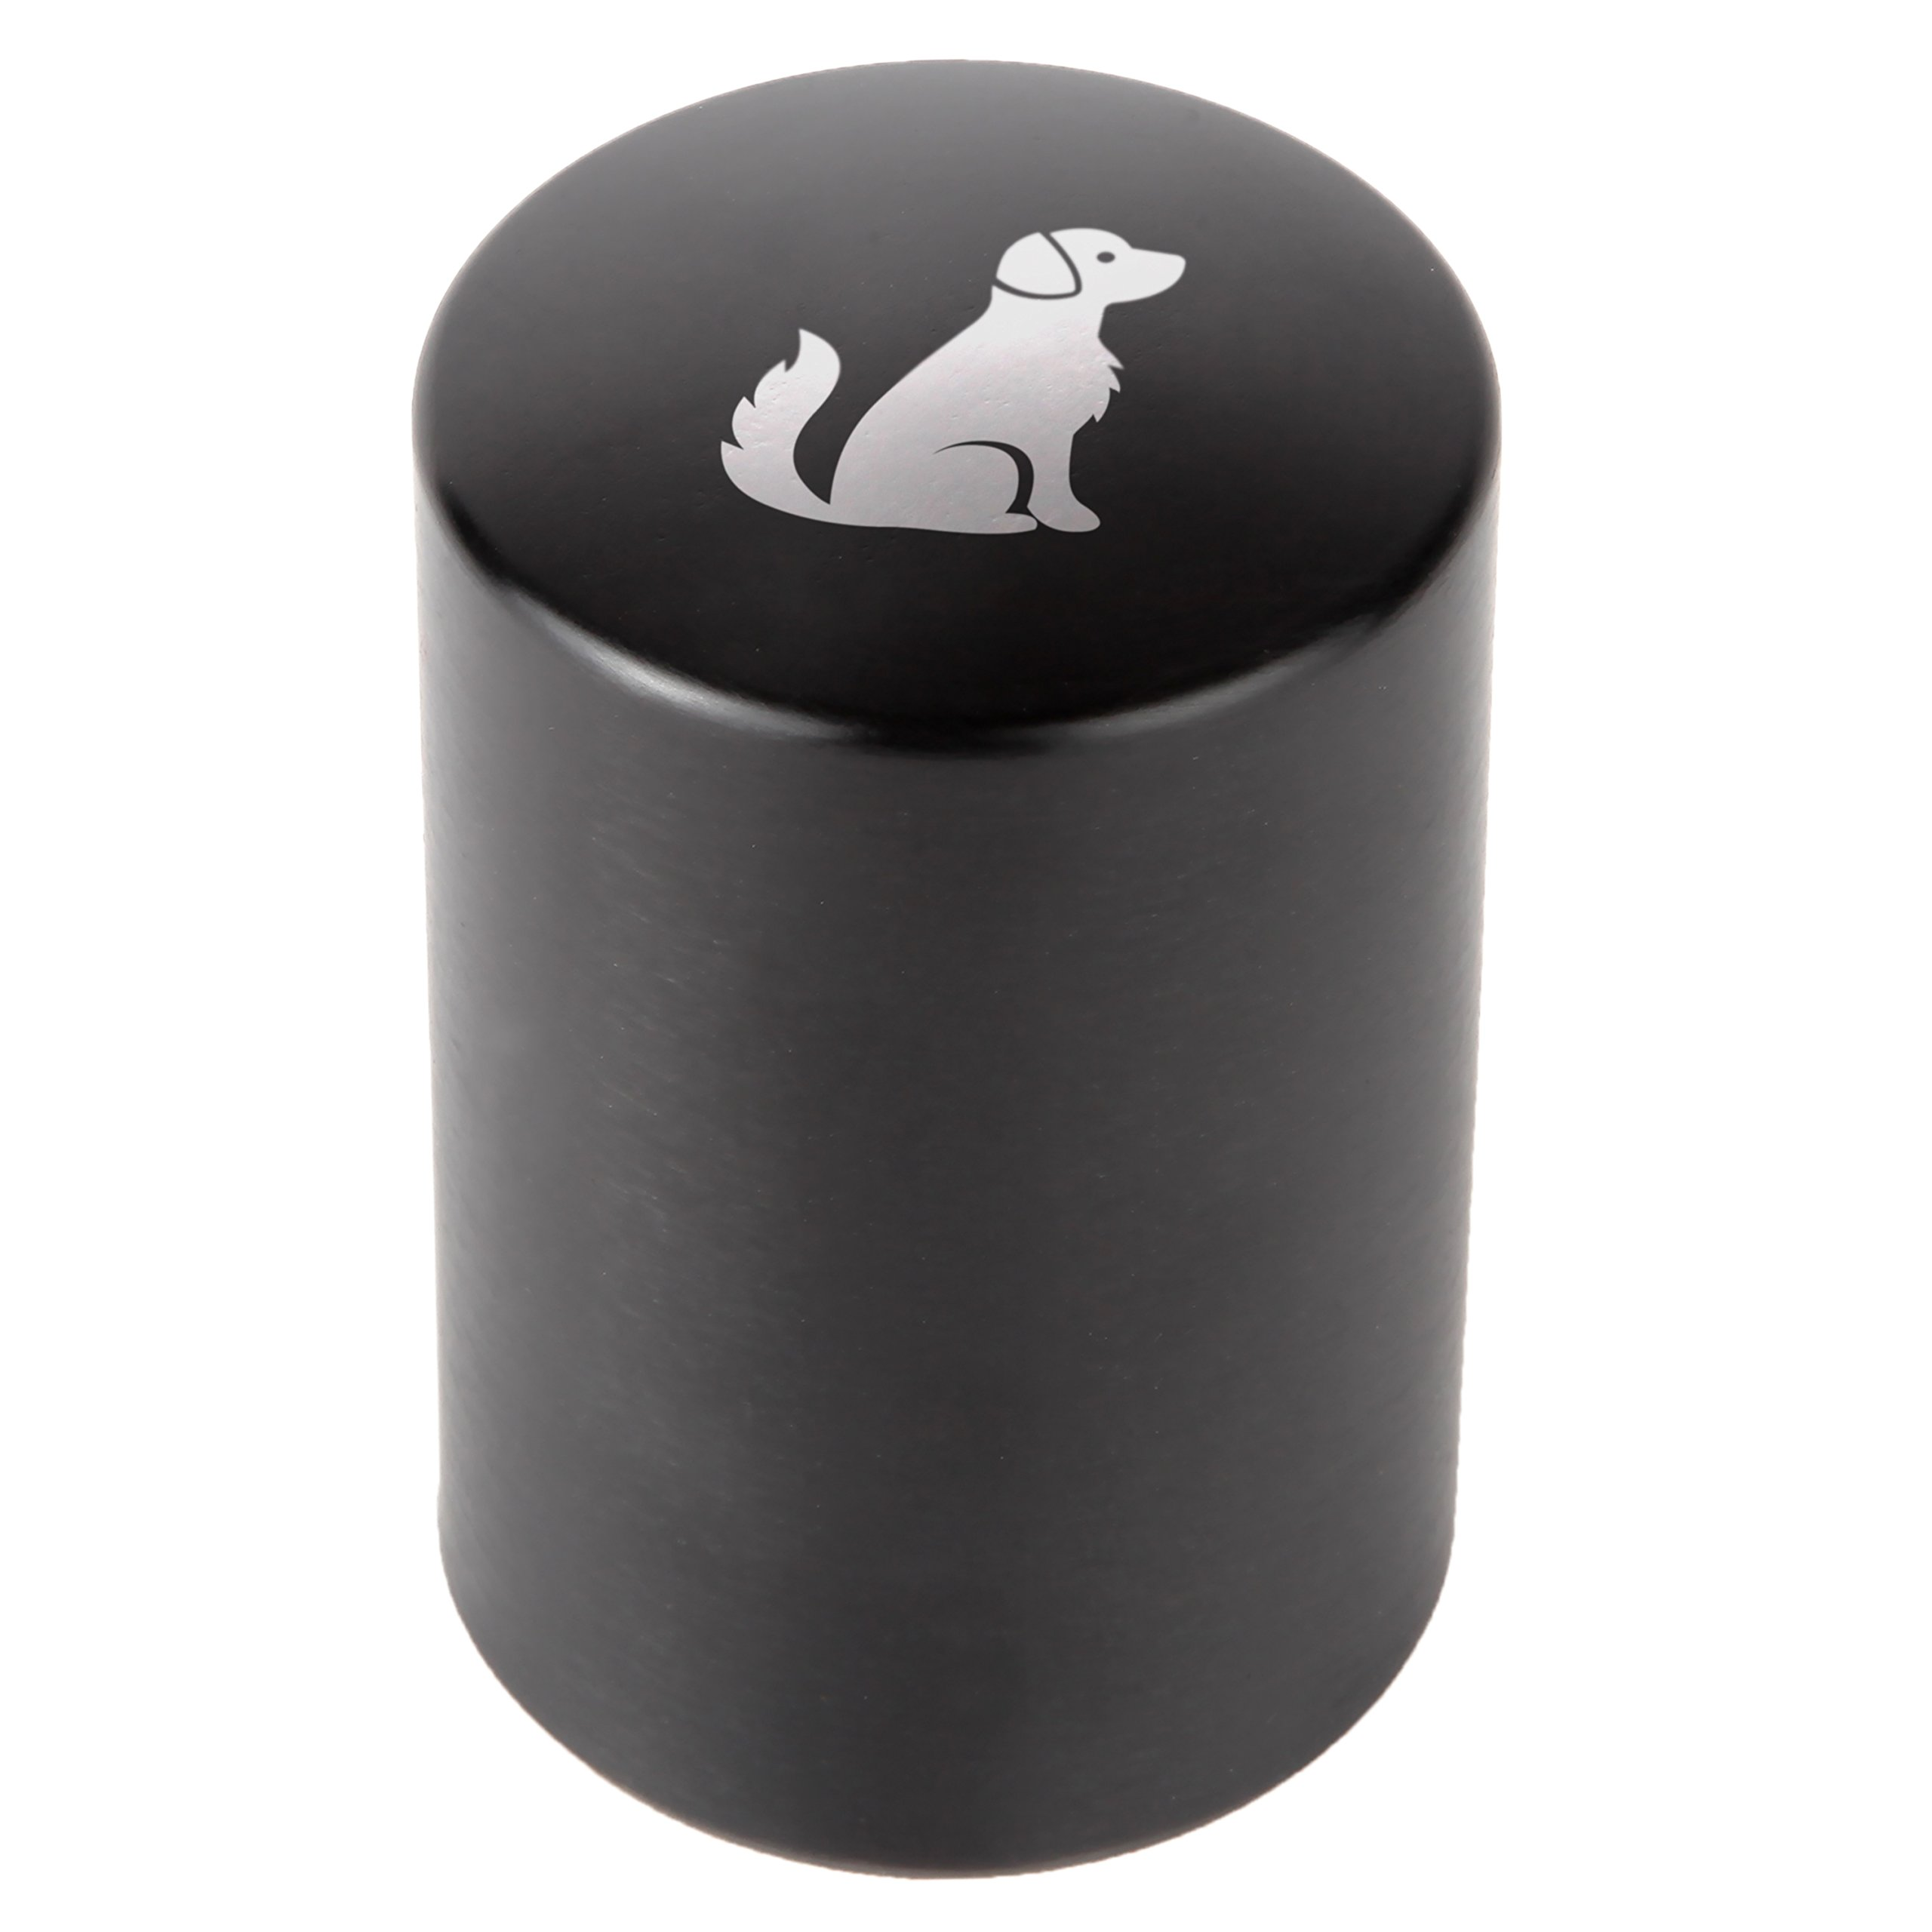 Golden Retriever Automatic Bottle Opener - Laser Etched Design - Bottle Opener With Catcher - Fast Bottle Opener For Parties, Events Or Everyday Use